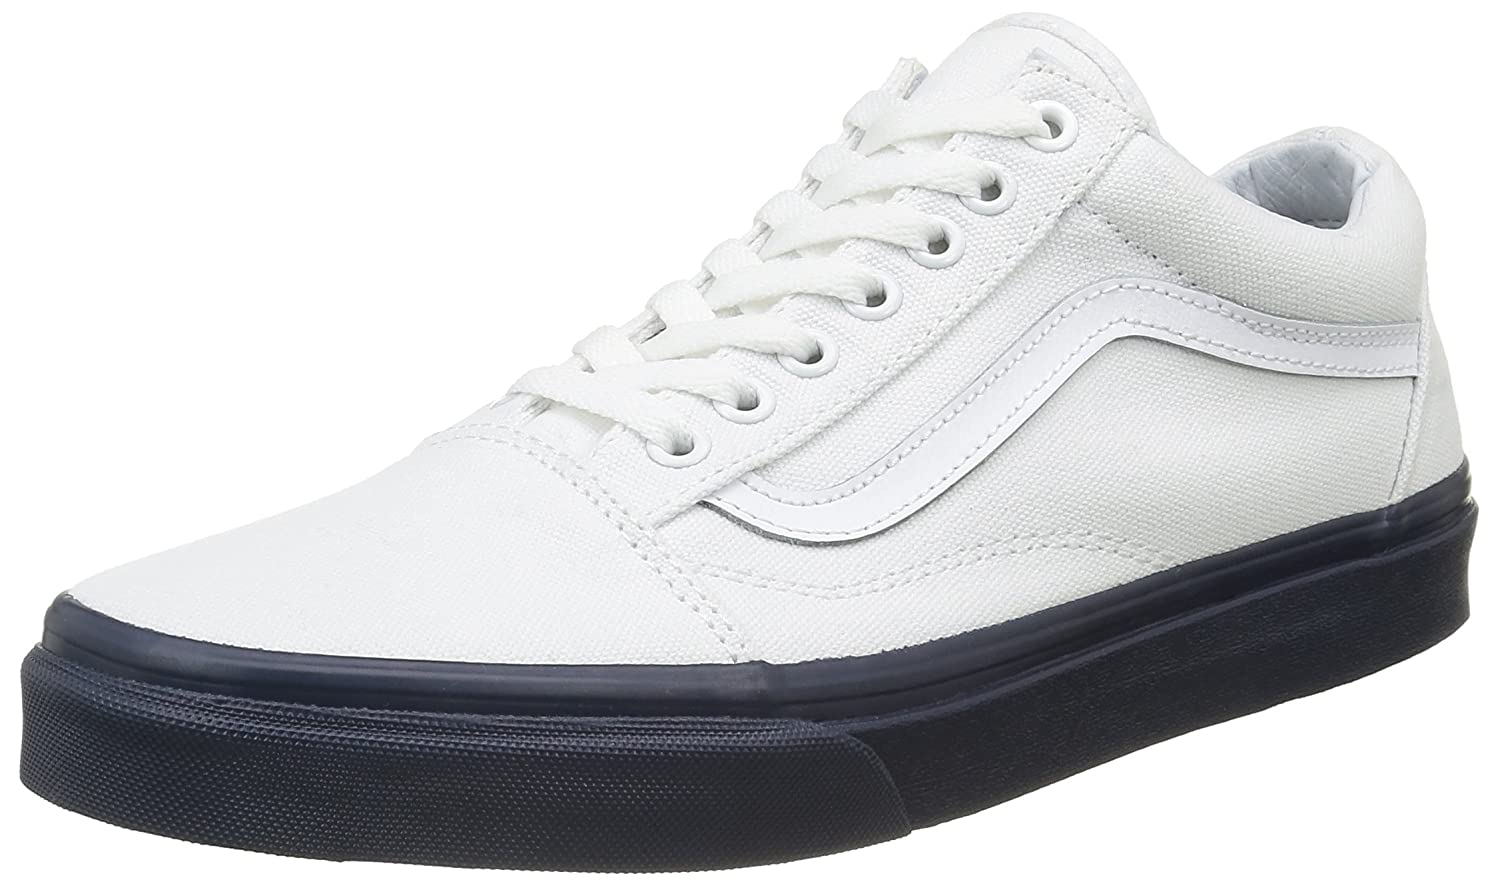 TALLA 42 EU. Vans Old Skool, Zapatillas Unisex Adulto